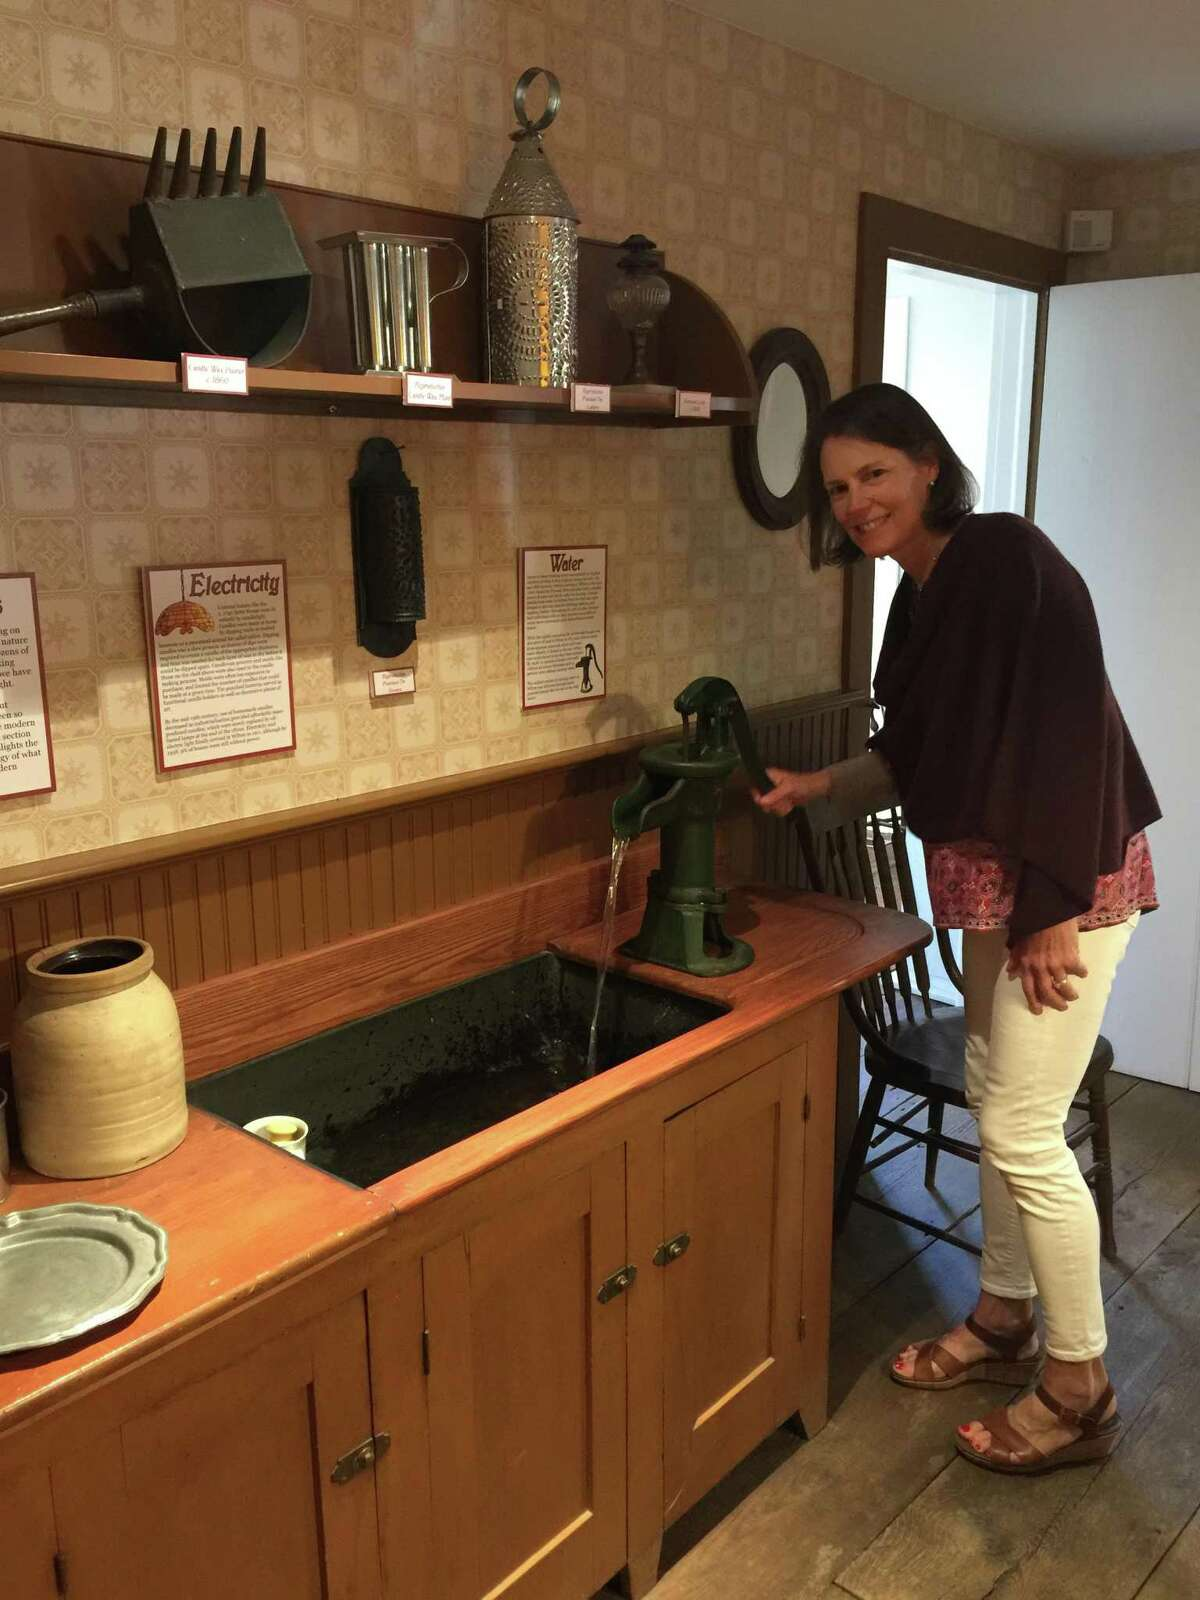 Just Like Grandma Used to Make: A Hands-on Experience of 300 Years of Kitchen History is the new permanent exhibit at the Wilton Historical Society, 224 Danbury Road, Wilton. For more information, visit wiltonhistorical.org.